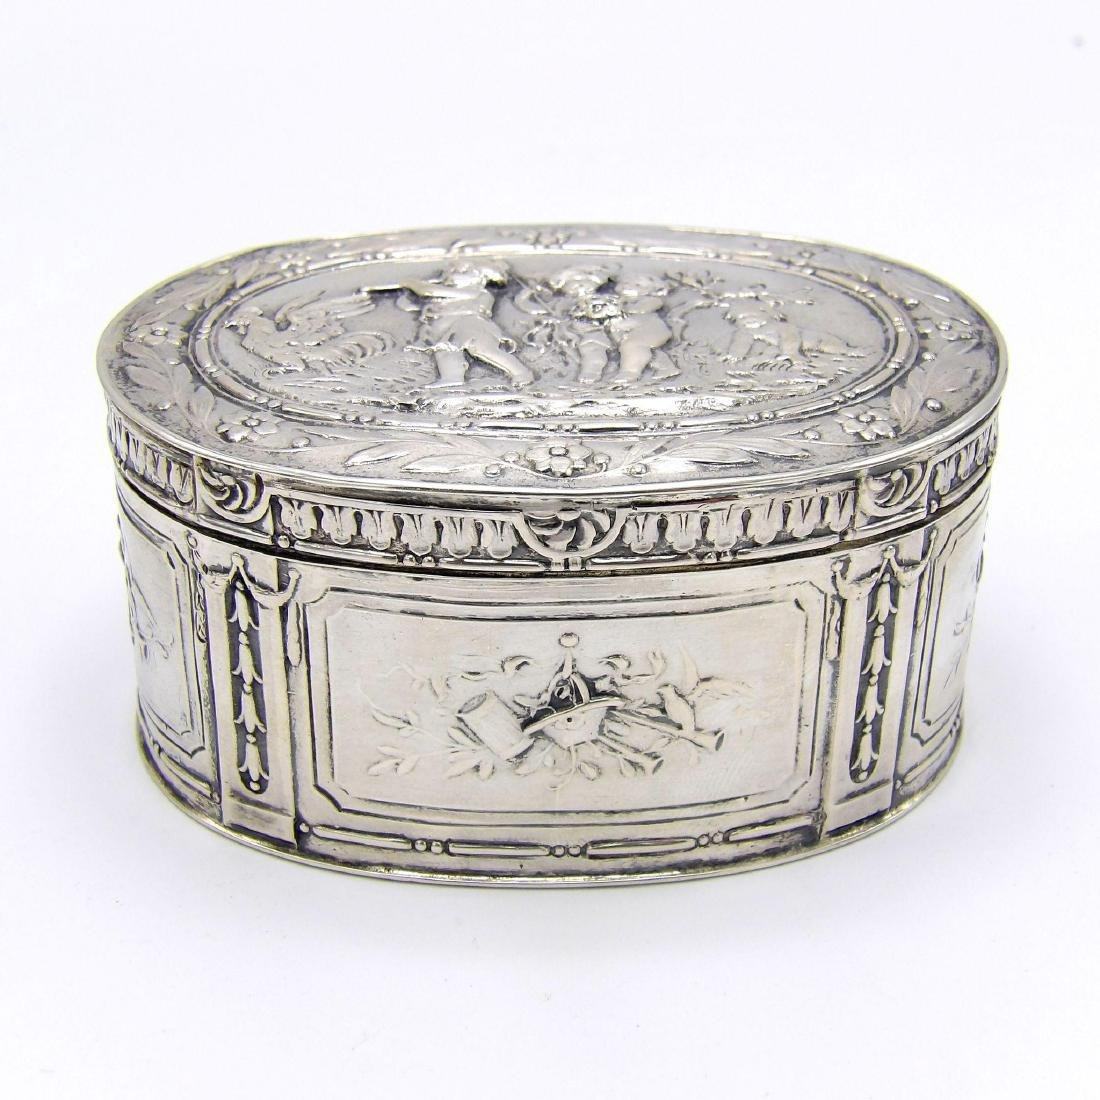 Antique Continental 830 Silver Oval Box, 1890 - 2